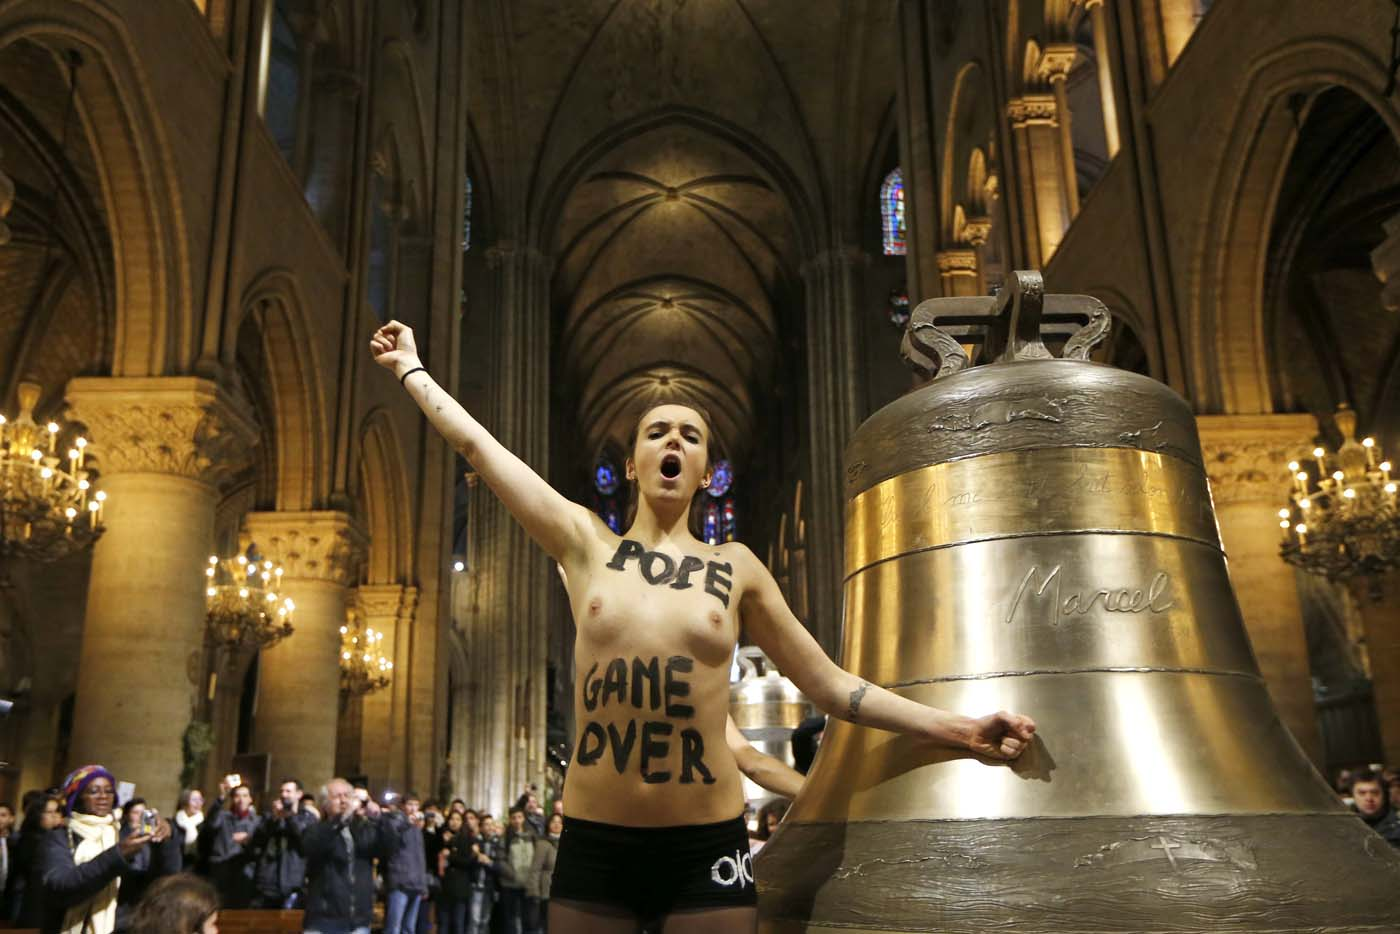 An activist from the women's rights organisation Femen protests in front of the new eight bronze bells displayed in the nave of Notre-Dame de Paris Cathedral in Paris